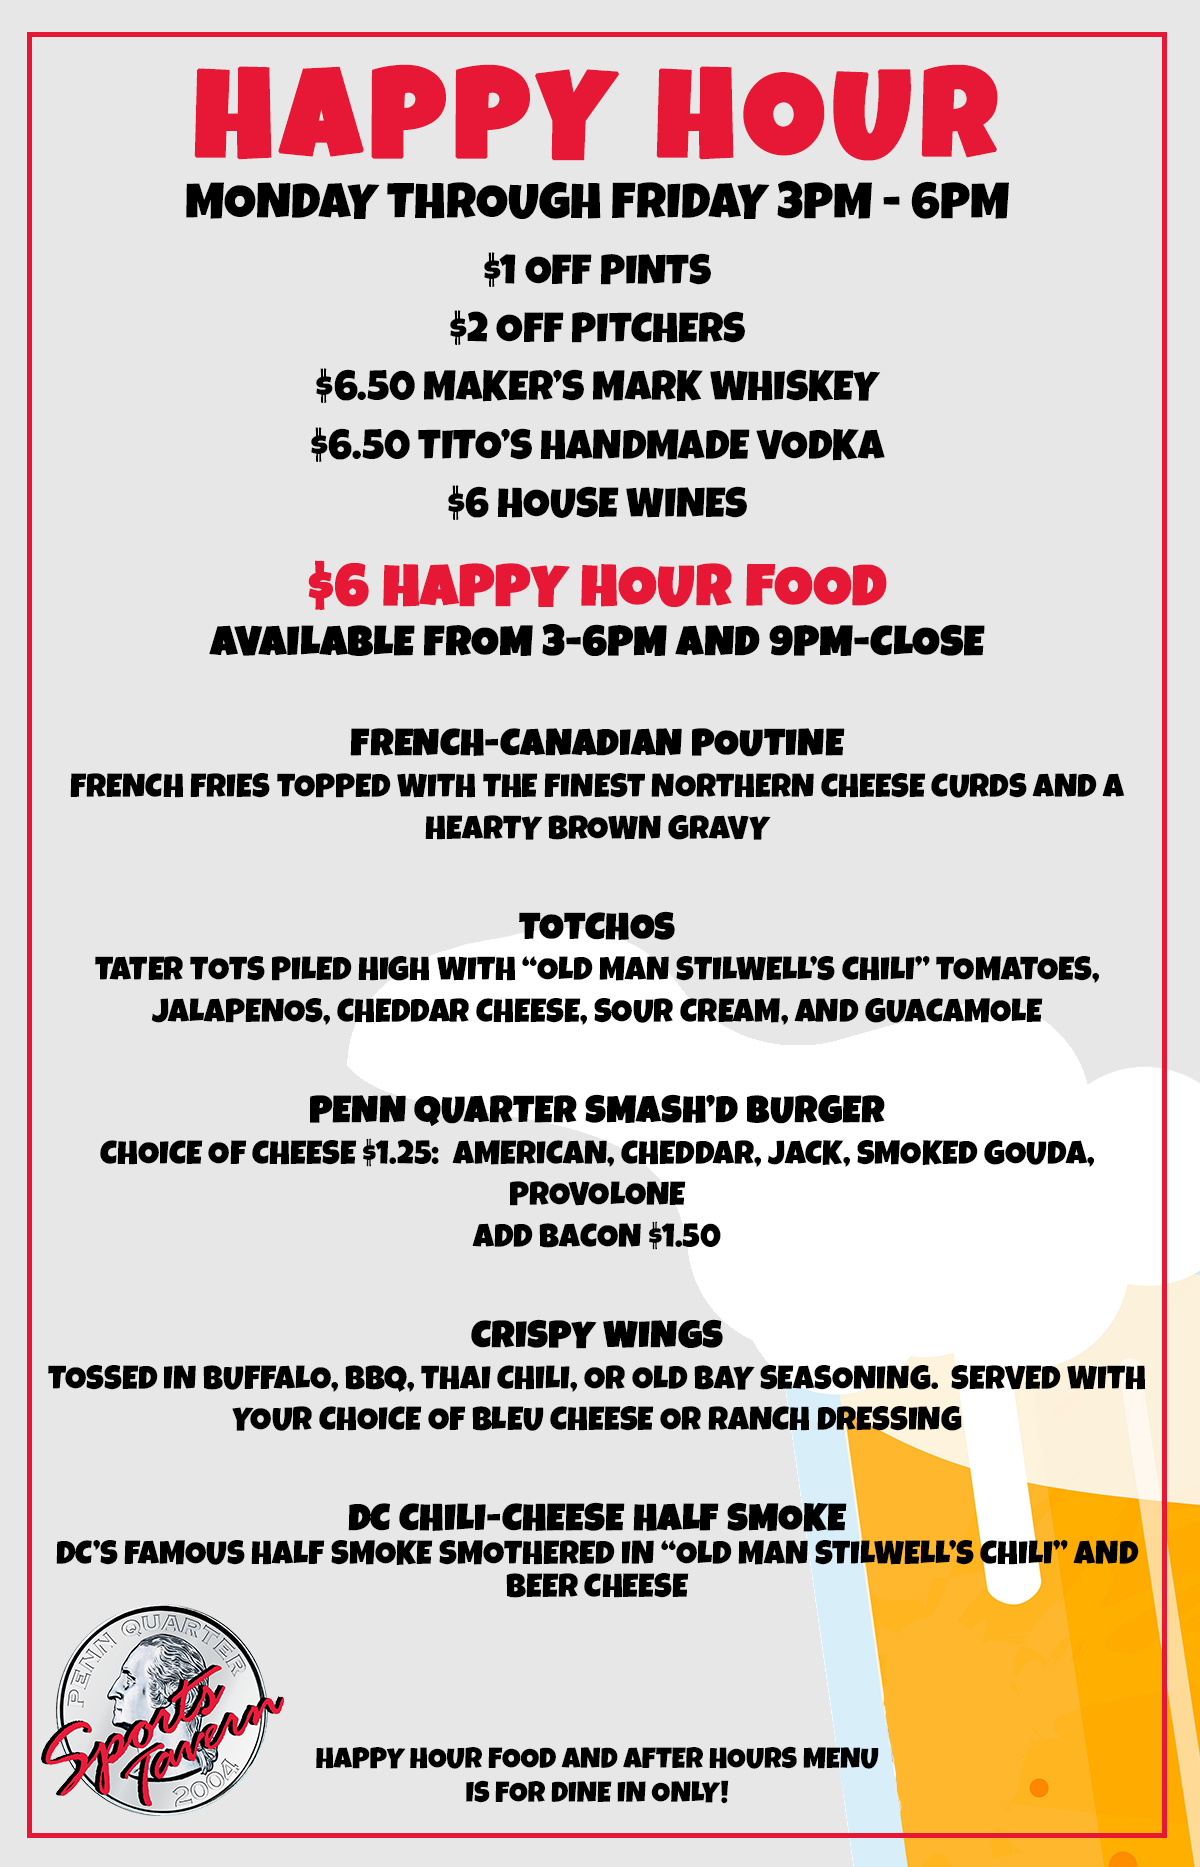 """Happy Hour Monday through Friday 3pm - 6pm. $1 Off Pints $2 Off Pitchers $6.50 Maker's Mark Whiskey $6.50 Tito's Handmade Vodka $6 House Wines. $6 Happy Hour Food available from 3-6pm and 9pm-Close  French-Canadian Poutine French fries topped with the finest Northern cheese curds and a hearty brown gravy  Totchos Tater Tots piled high with """"Old Man Stilwell's Chili"""" tomatoes, jalapenos, cheddar cheese, sour cream, and guacamole  Penn Quarter Smash'D Burger Choice of Cheese $1.25:  American, Cheddar, Jack, Smoked Gouda, Provolone Add Bacon $1.50  Crispy Wings Tossed in Buffalo, BBQ, Thai Chili, or Old Bay Seasoning.  Served with your choice of Bleu Cheese or Ranch dressing  DC Chili-Cheese Half Smoke DC's famous half smoke smothered in """"Old Man Stilwell's Chili"""" and beer cheese. Happy Hour Food and After Hours menu is for dine in only!"""